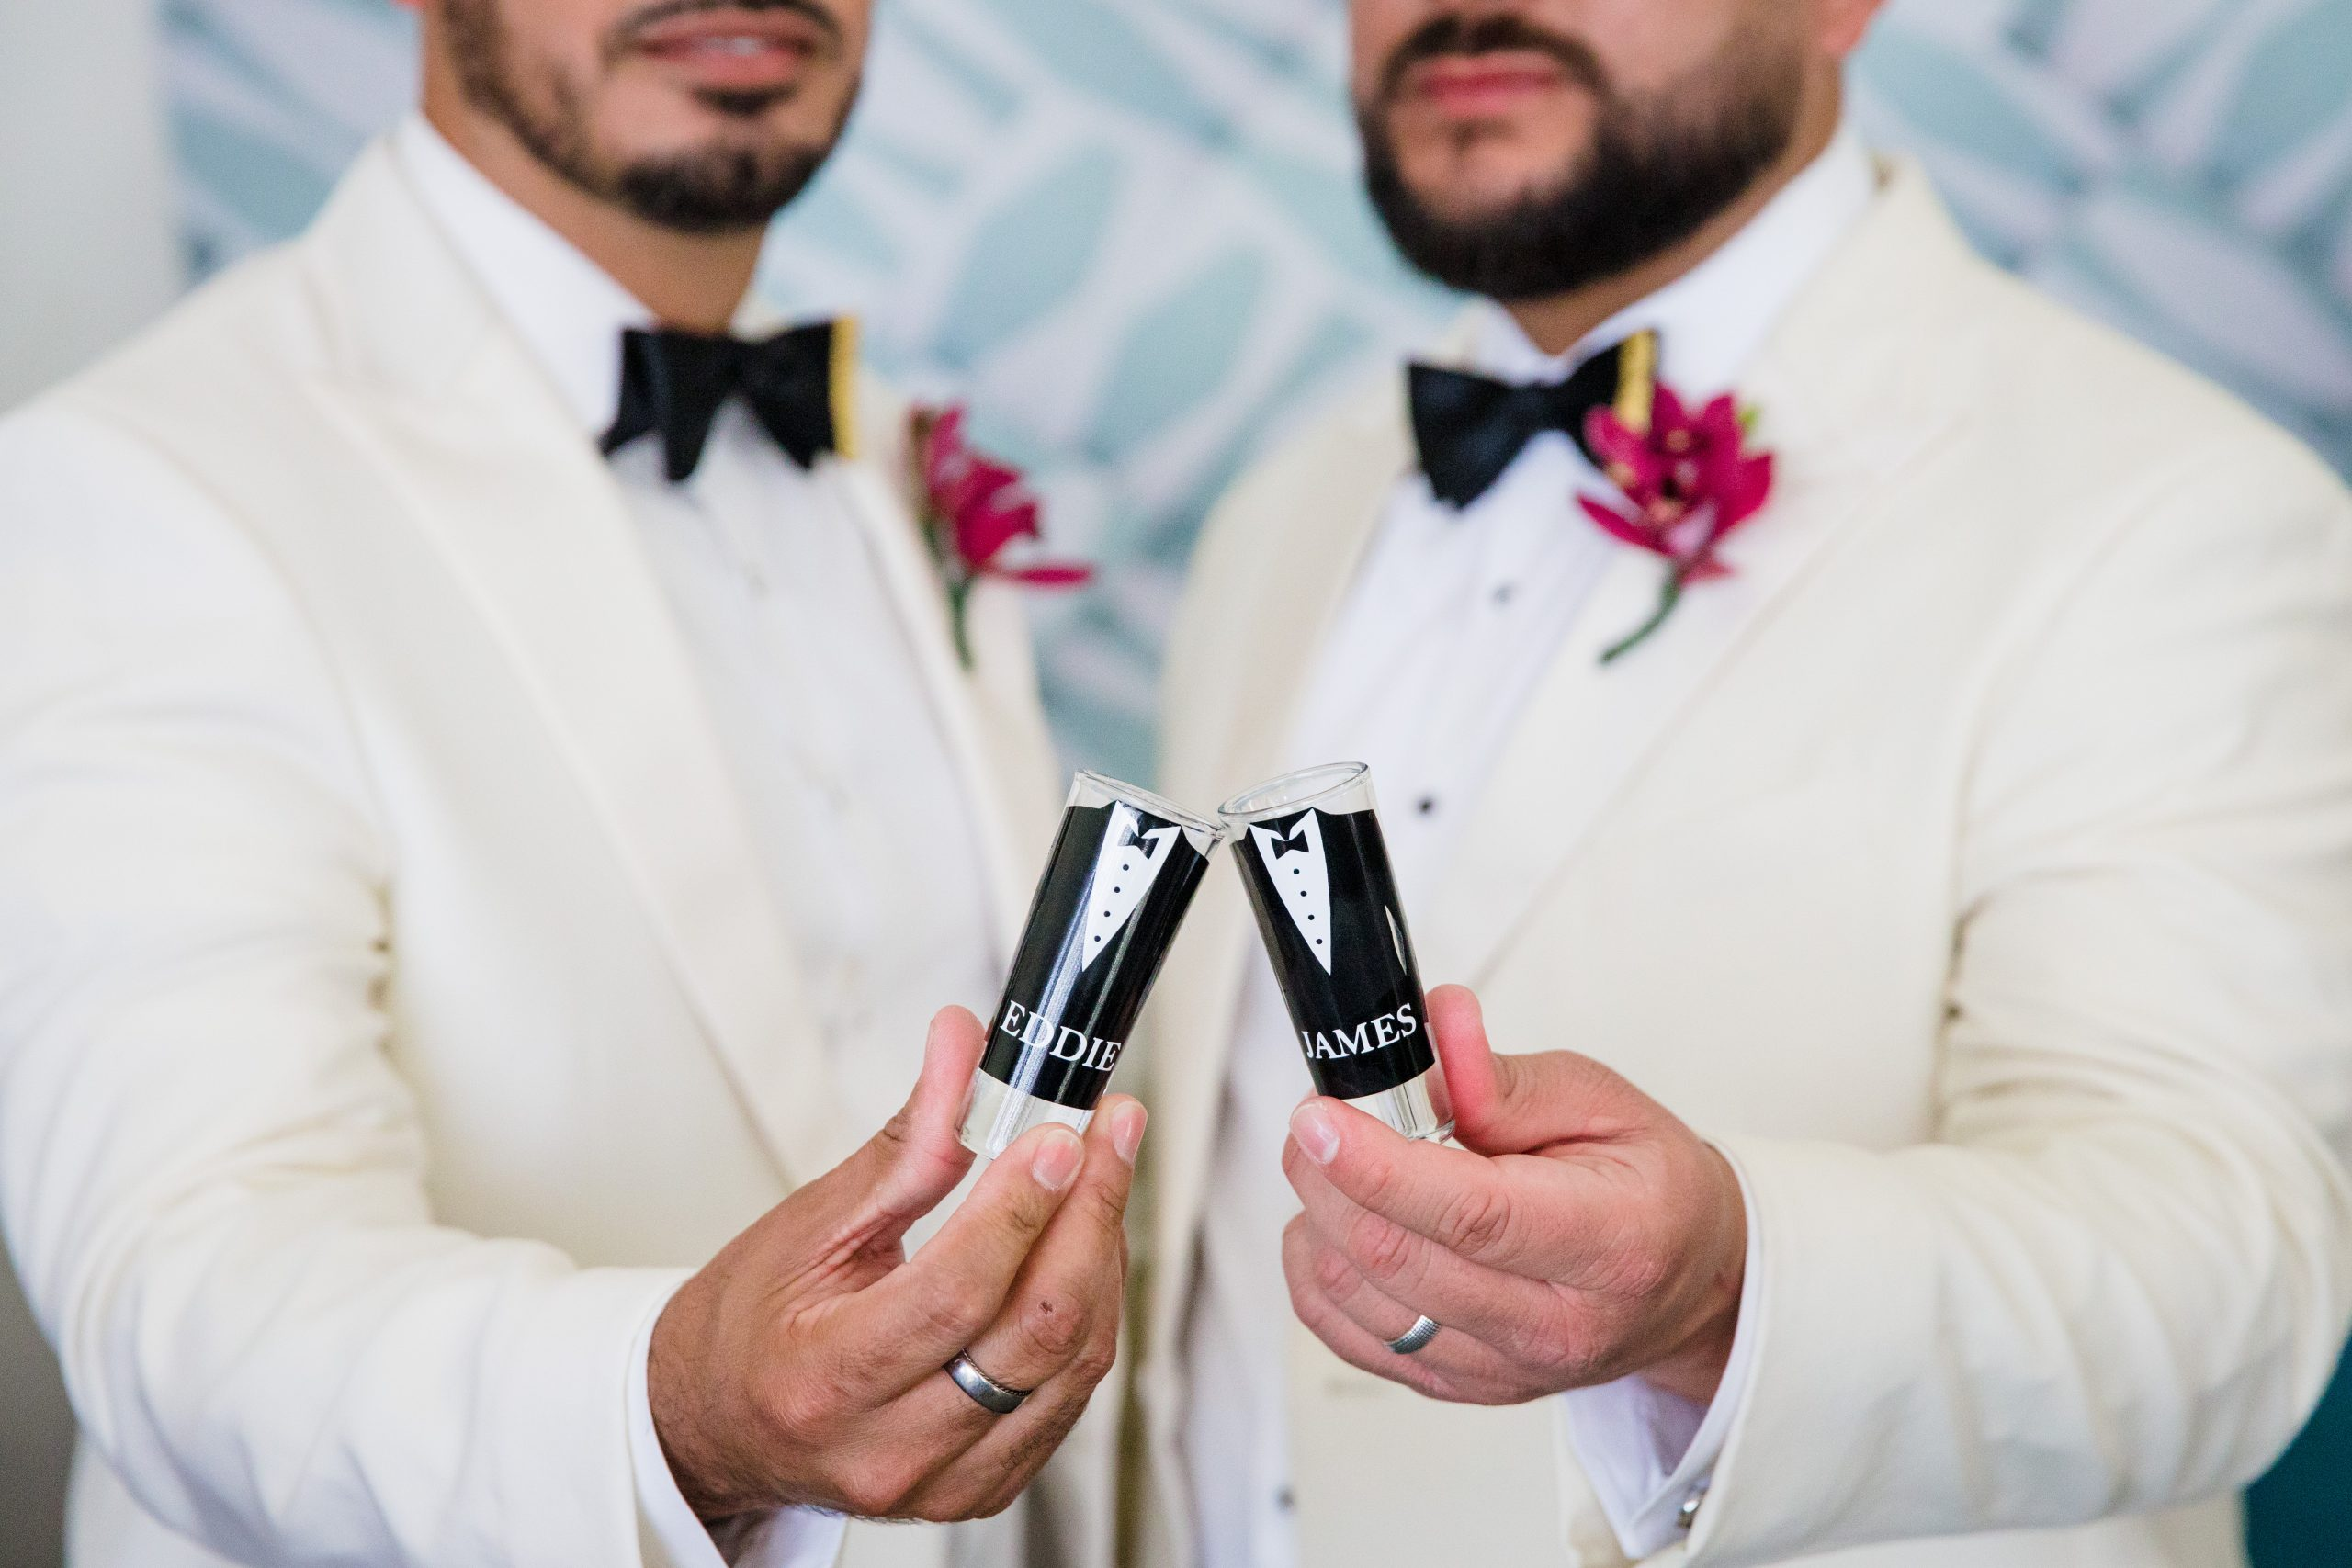 Two Groom toast to their wedding